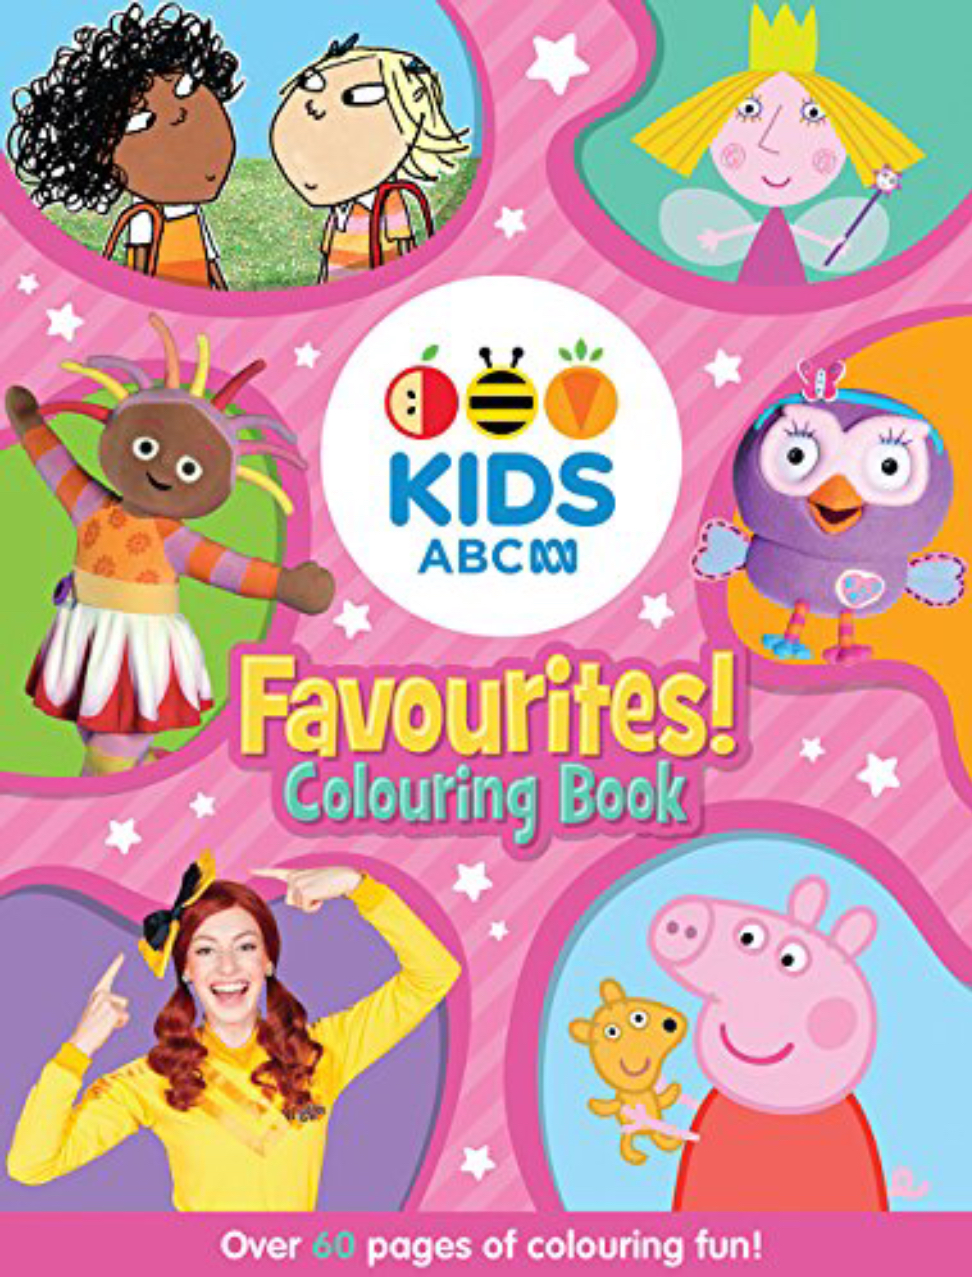 ABC KIDS Favourites! Colouring Book (pink book)